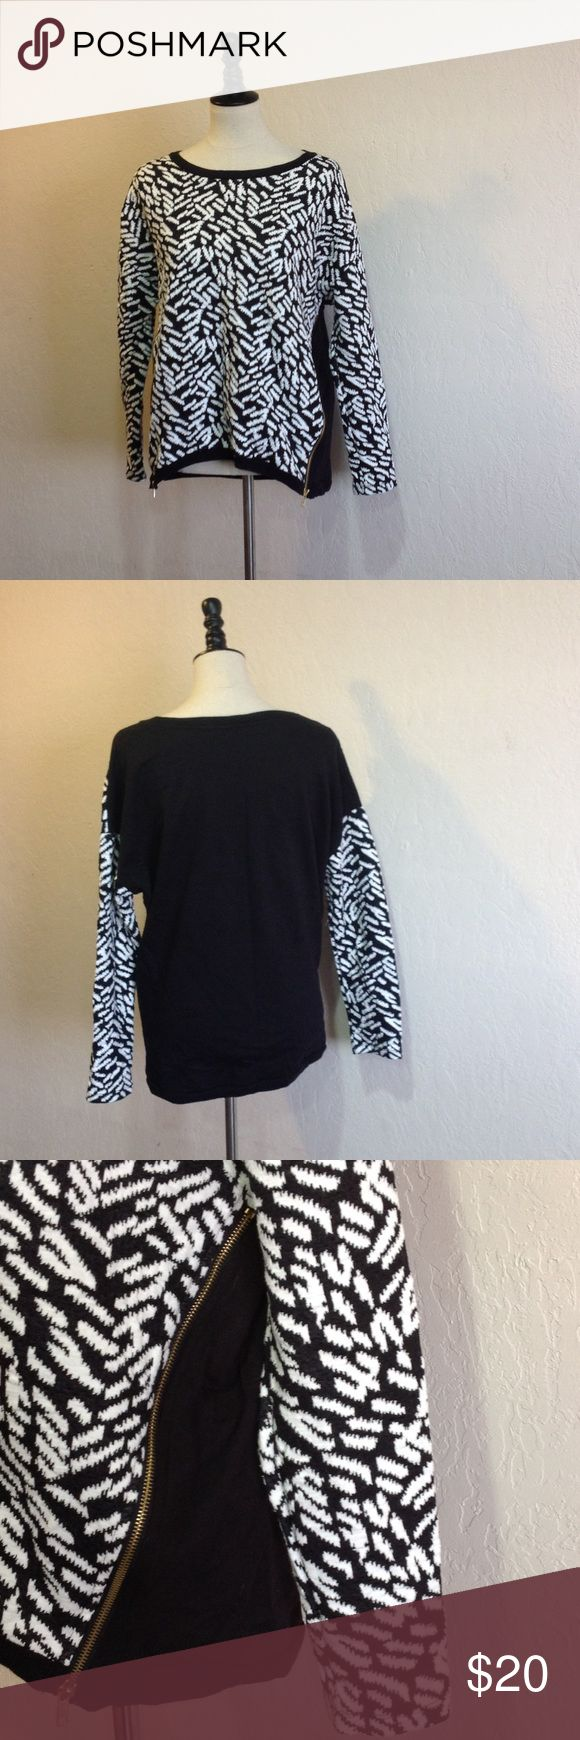 Forever 21 Sweater Forever 21 • long sleeve sweater • black & white pattern • gold side zippers • worn once • size:M Forever 21 Sweaters